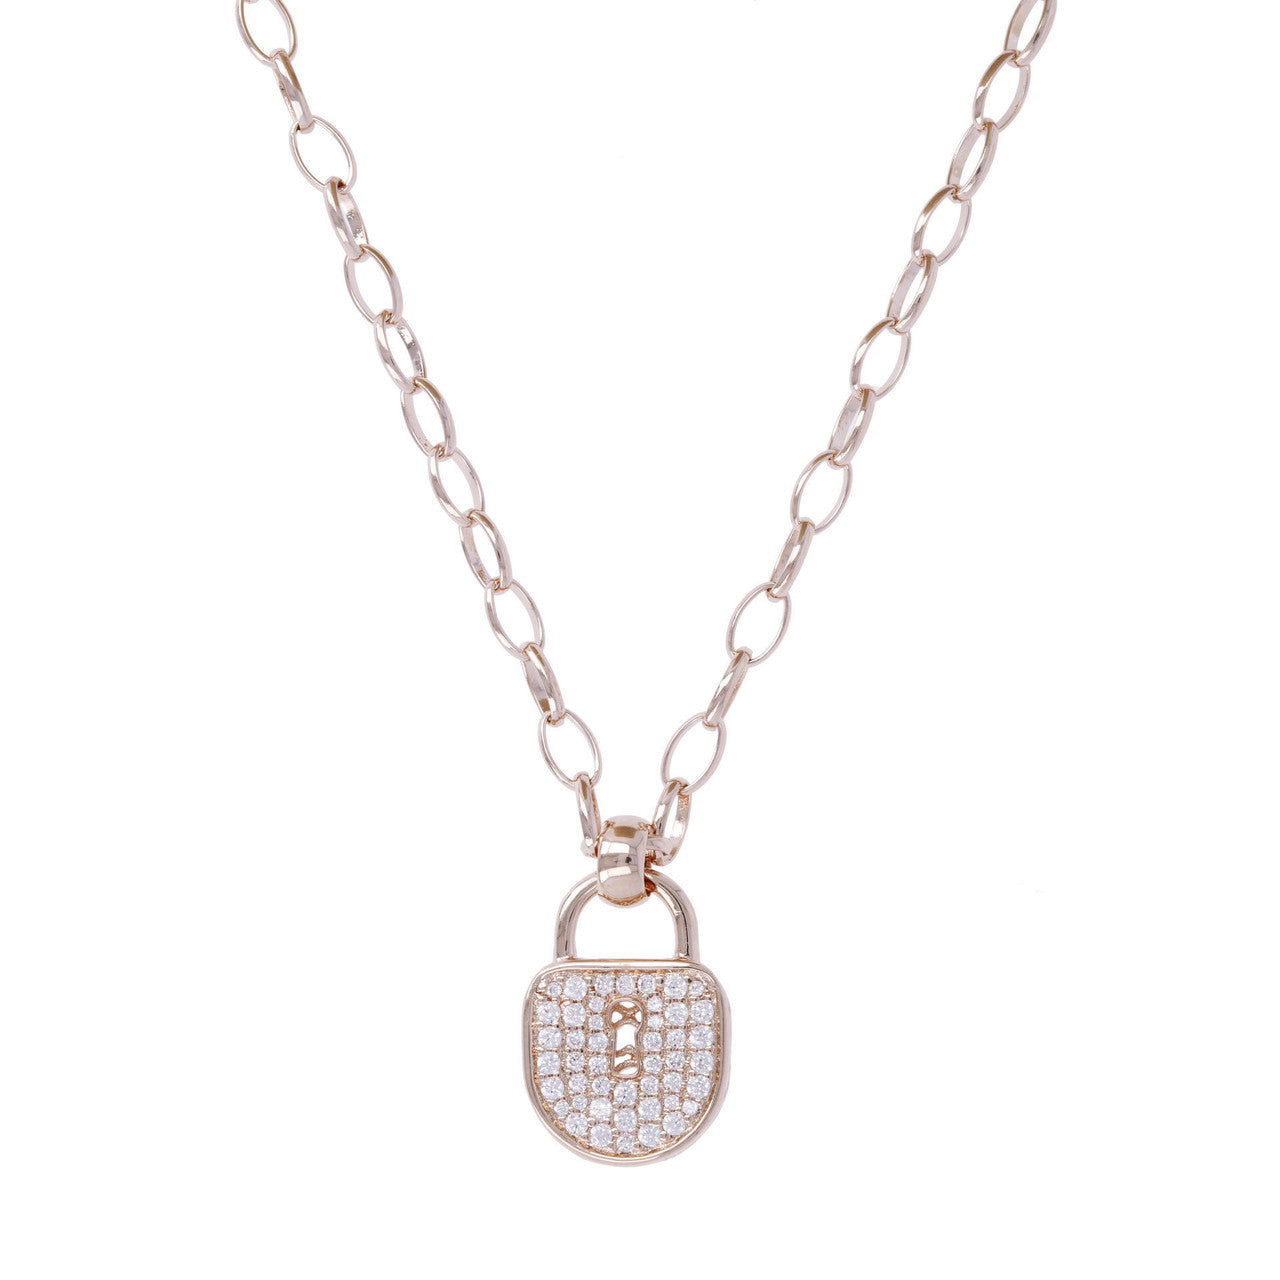 Lock Charm Necklace CUBIC ZIRCONIA